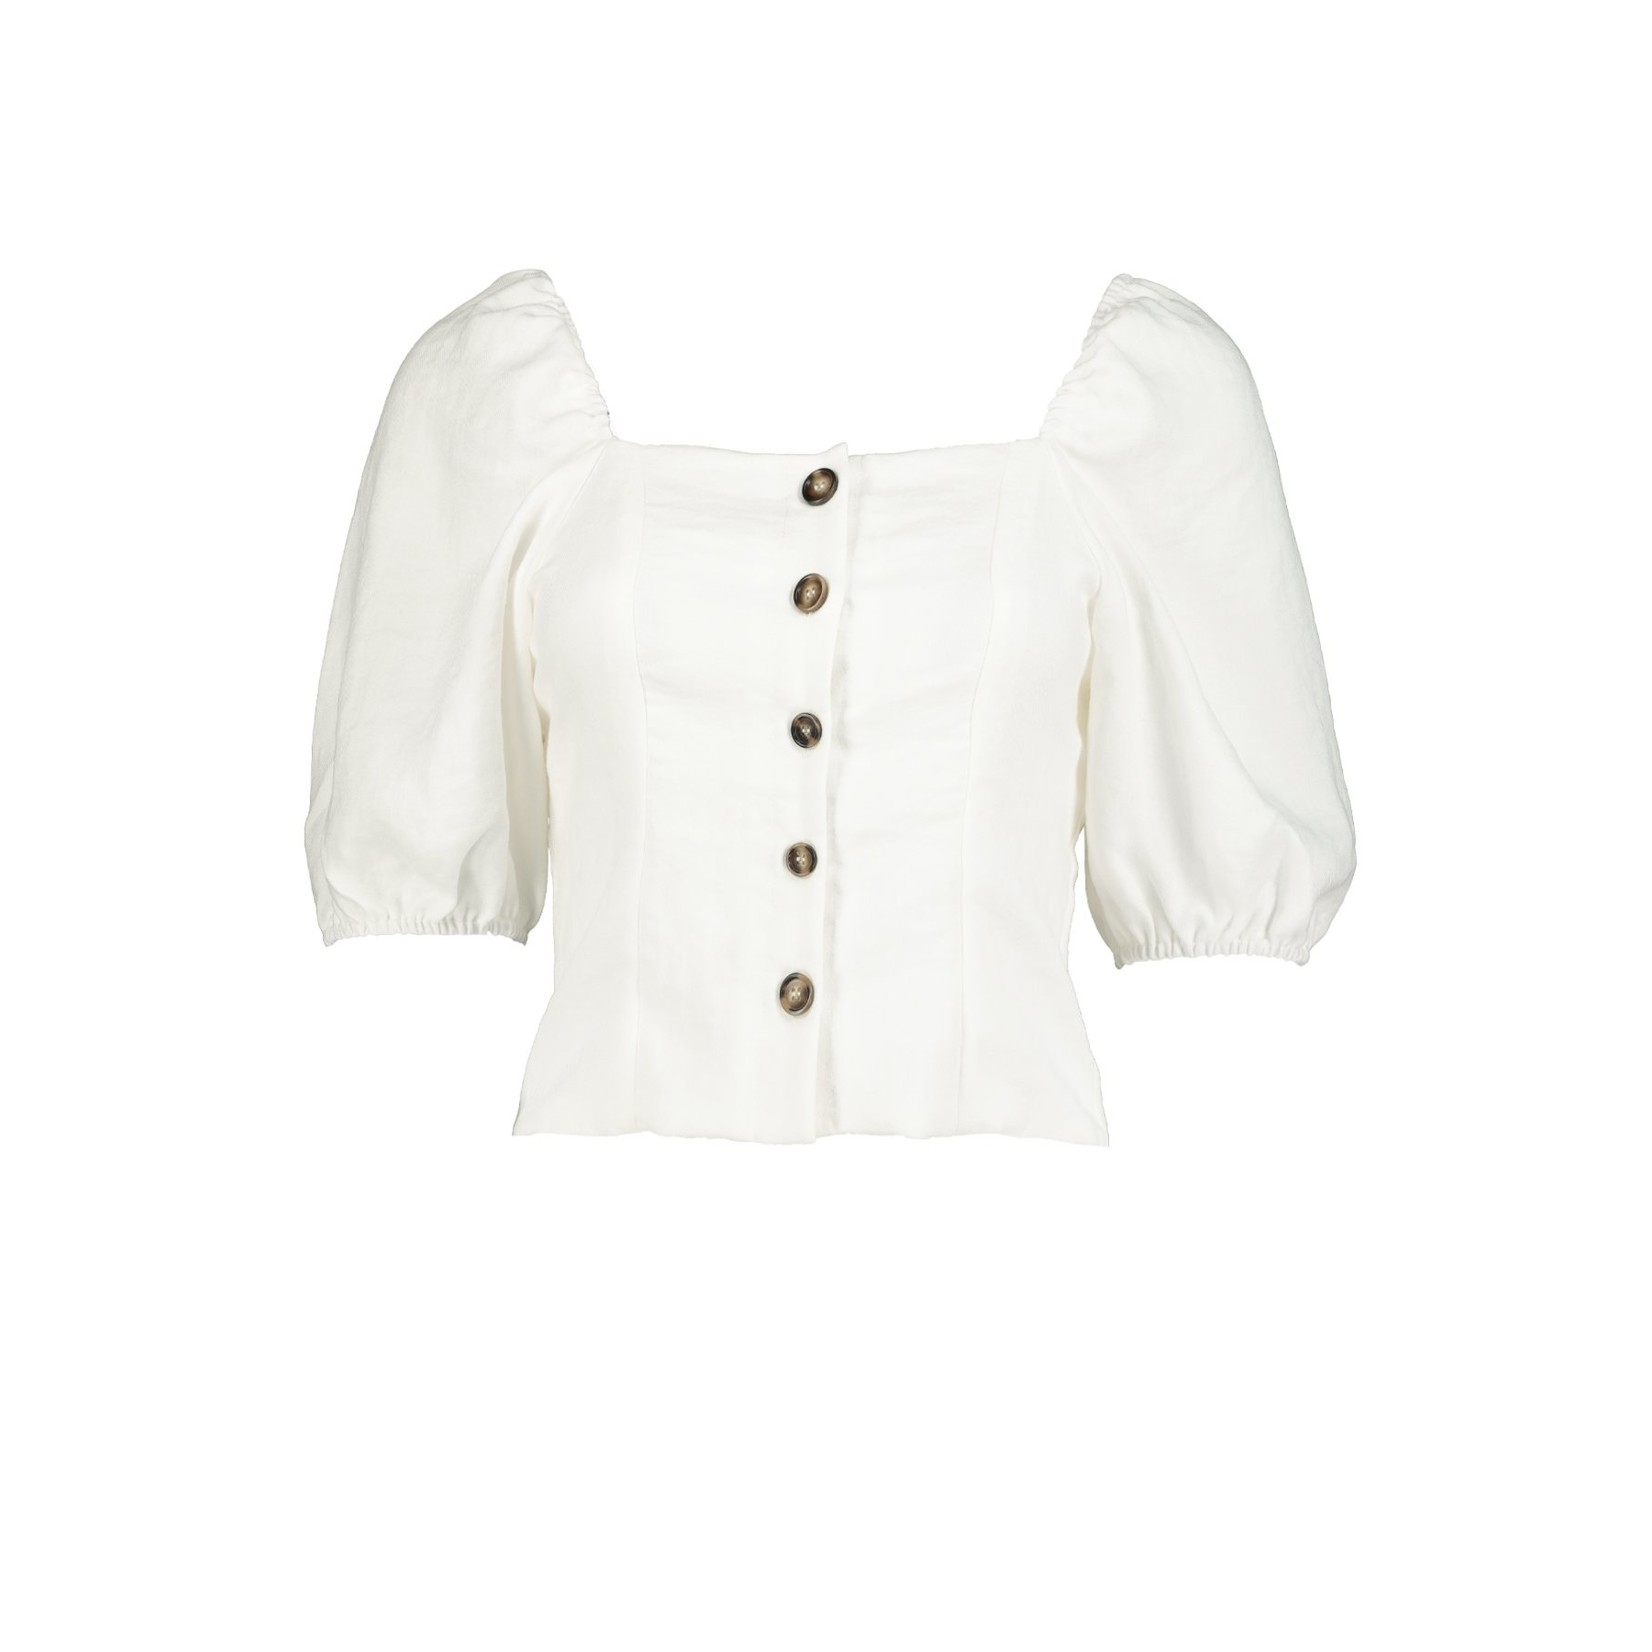 BISHOP + YOUNG SOJOURN BUTTON FRONT TOP